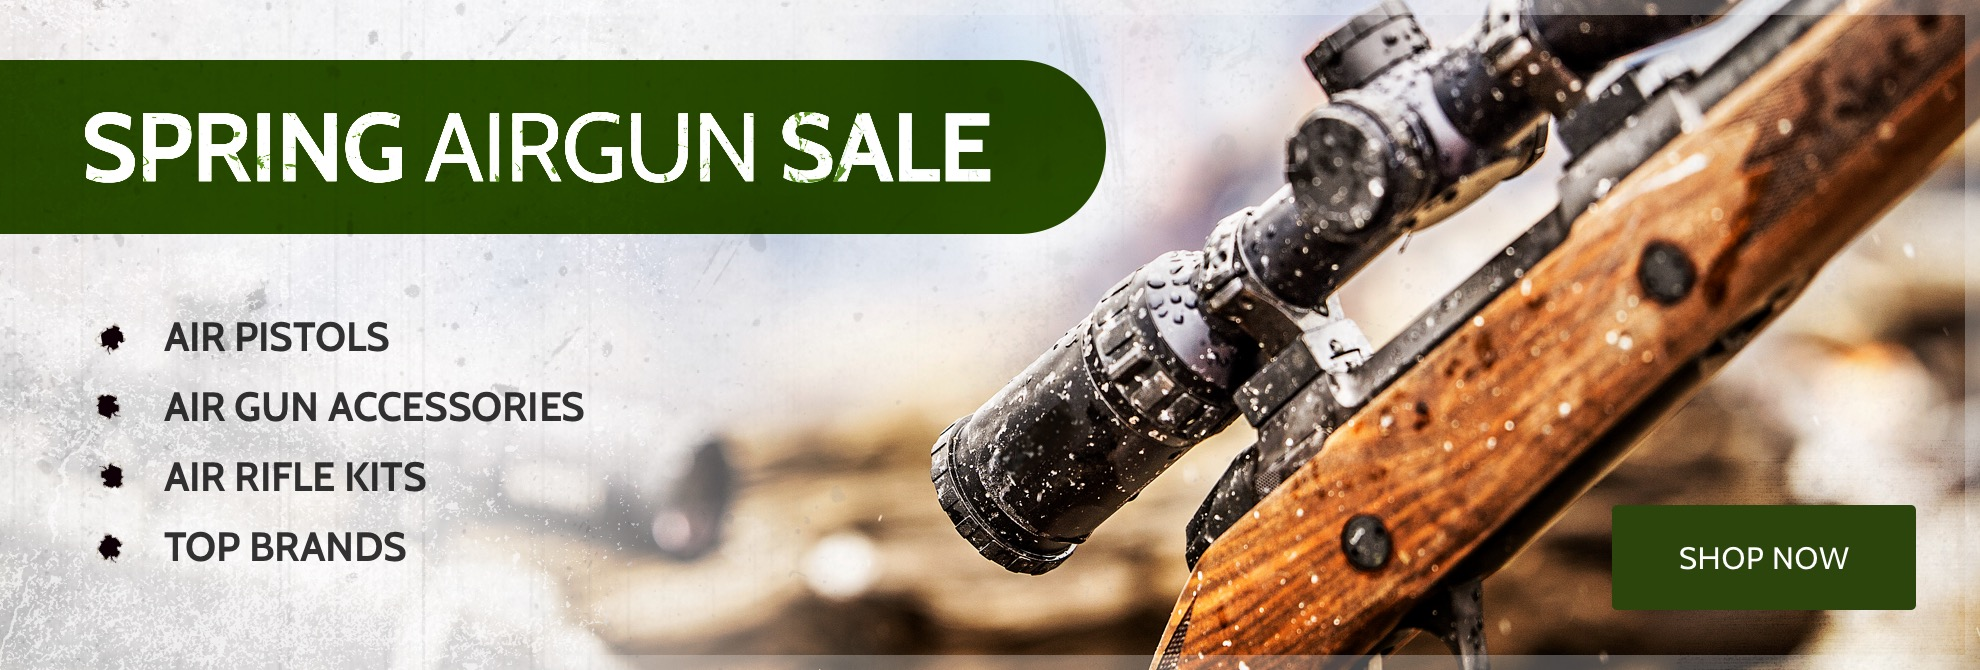 Spring Airgun Sale